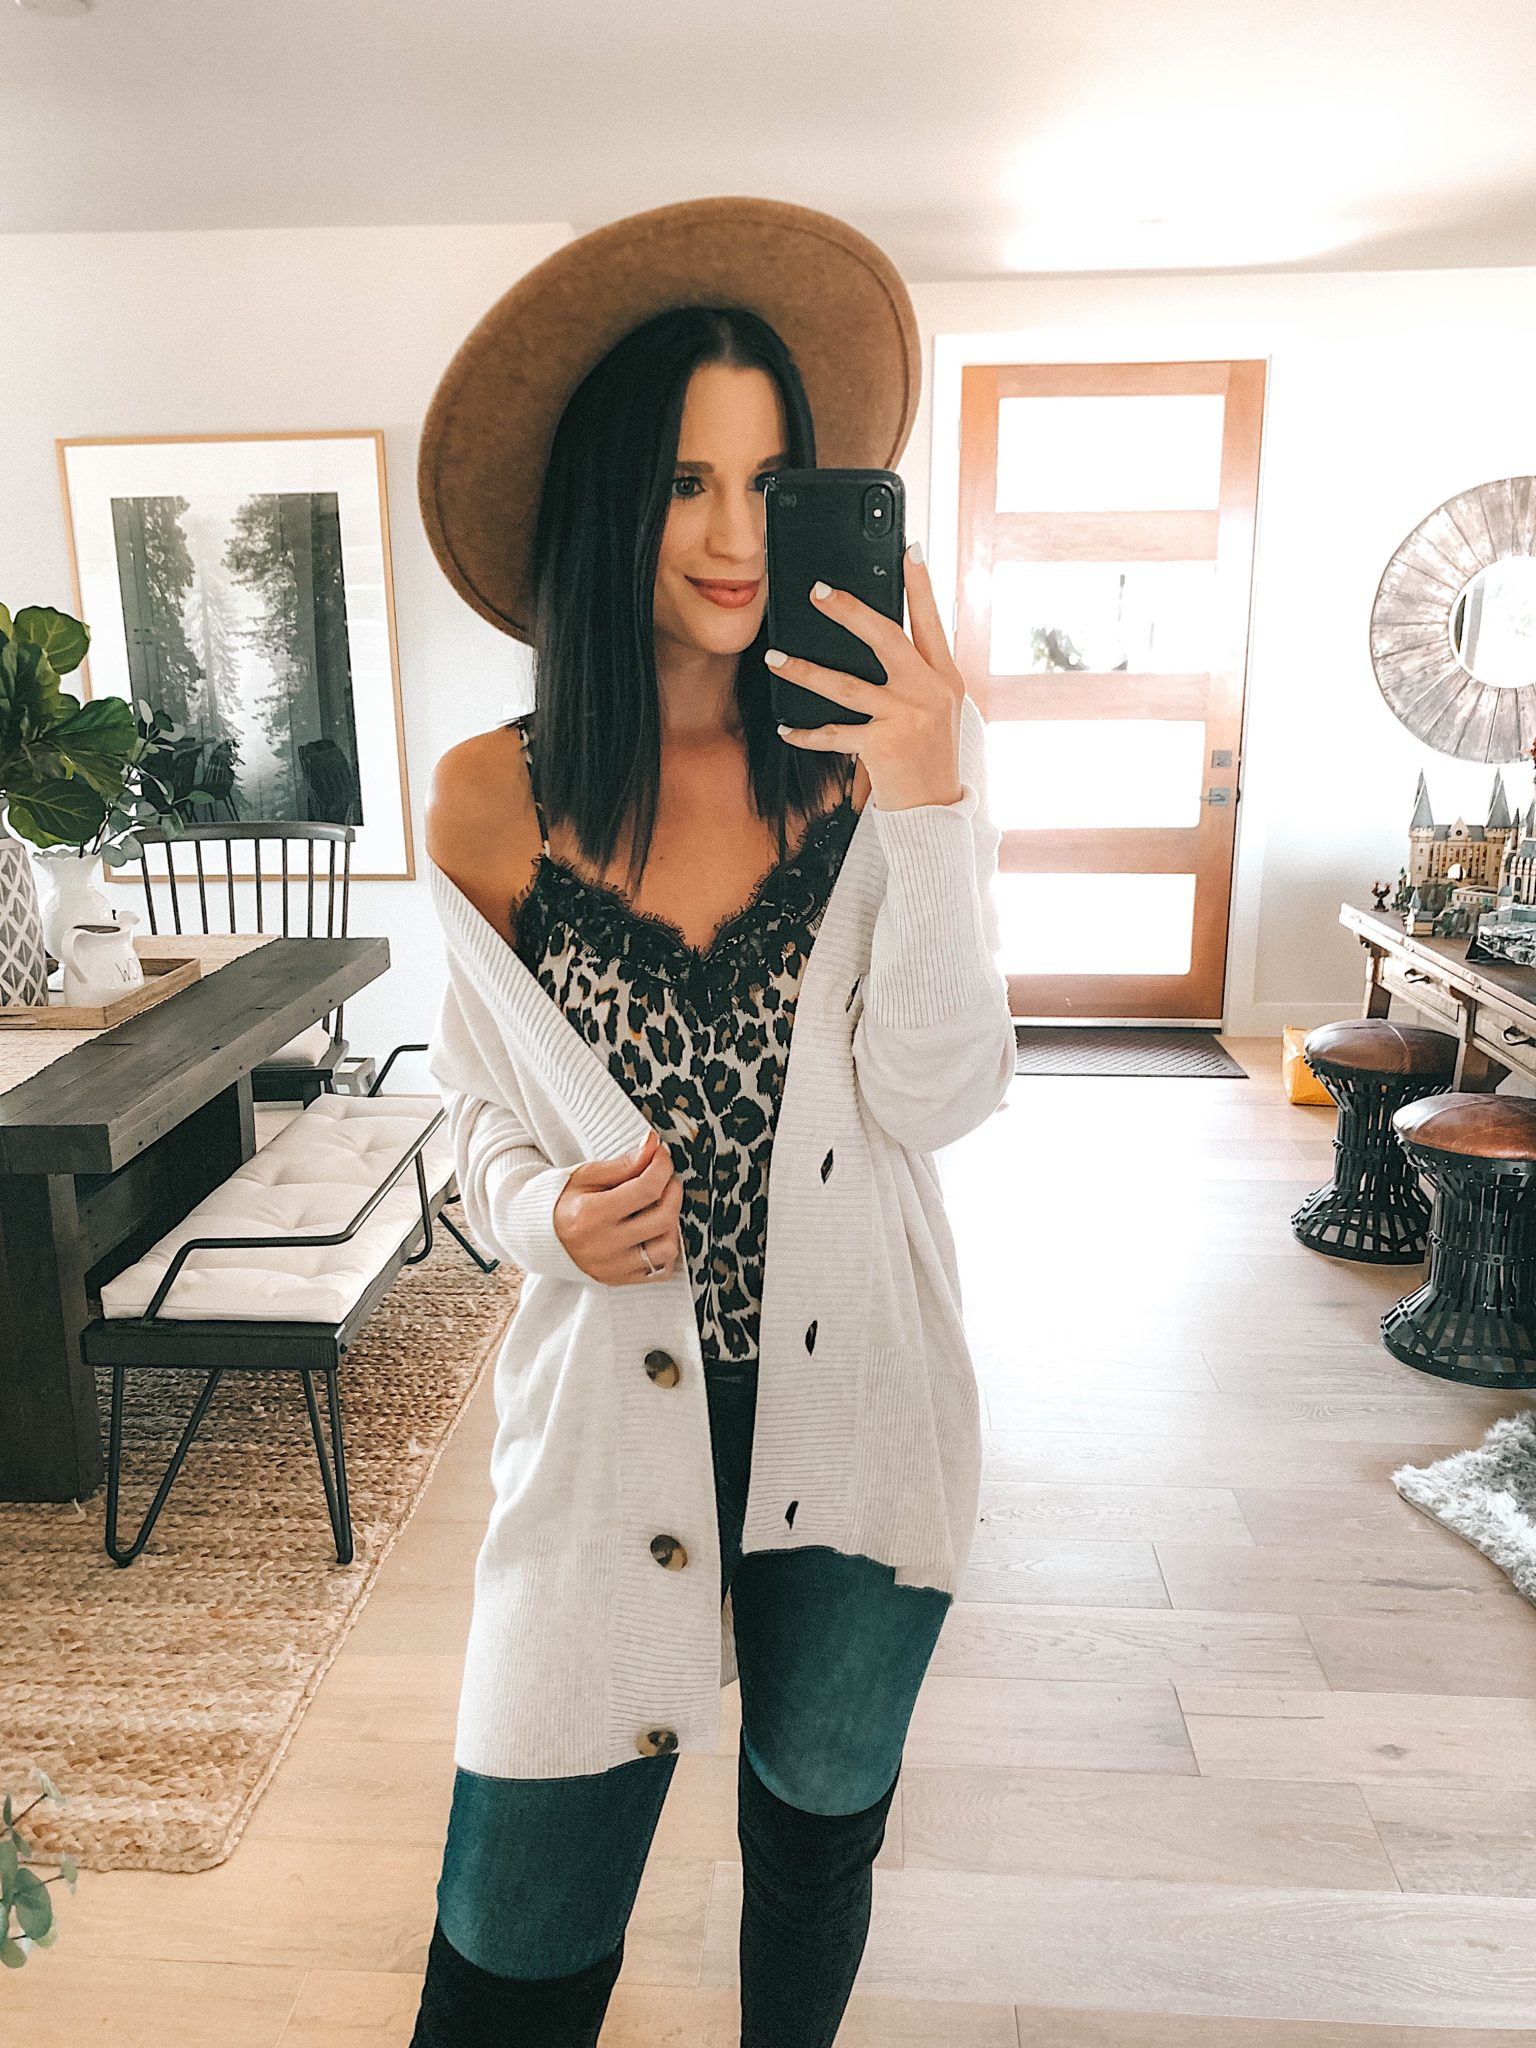 Create a Capsule Wardrobe with Nordstrom Anniversary Sale Pieces by popular Austin fashion blog, Dressed to Kill: image of a woman standing in her house and wearing a Chelsea28 Button Front Cardigan and Steve Madden Over the Knee Boots